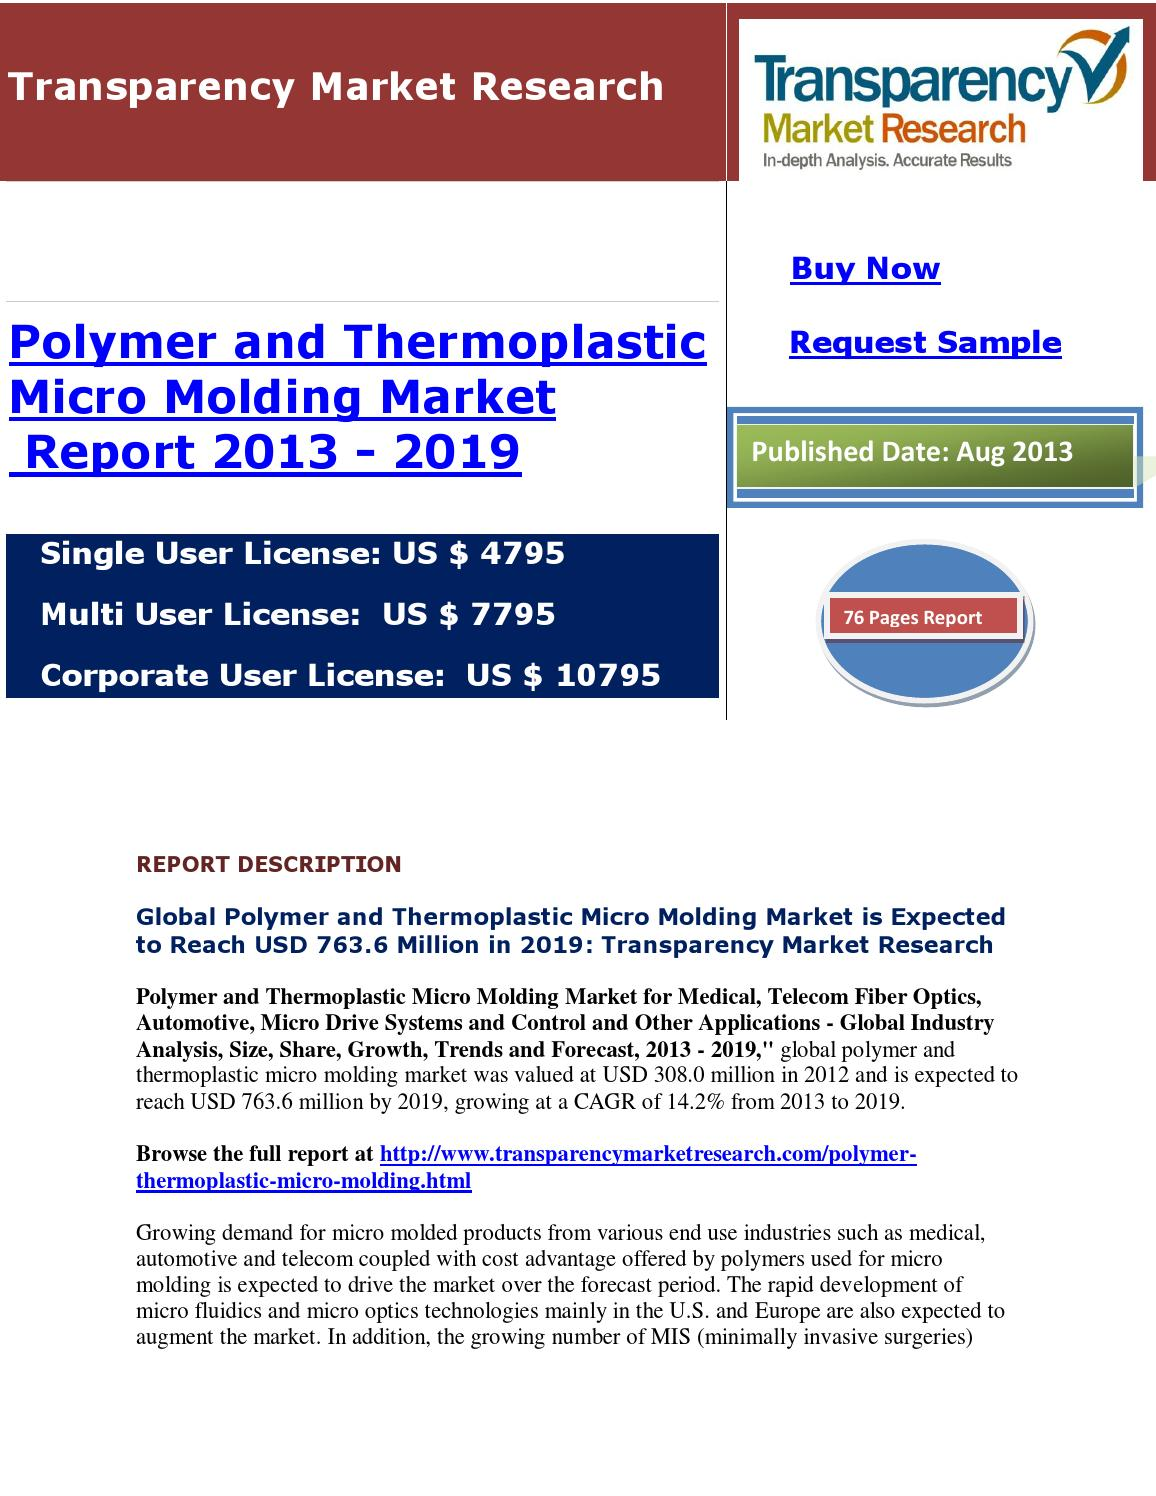 Polymer and thermoplastic micro modling market by